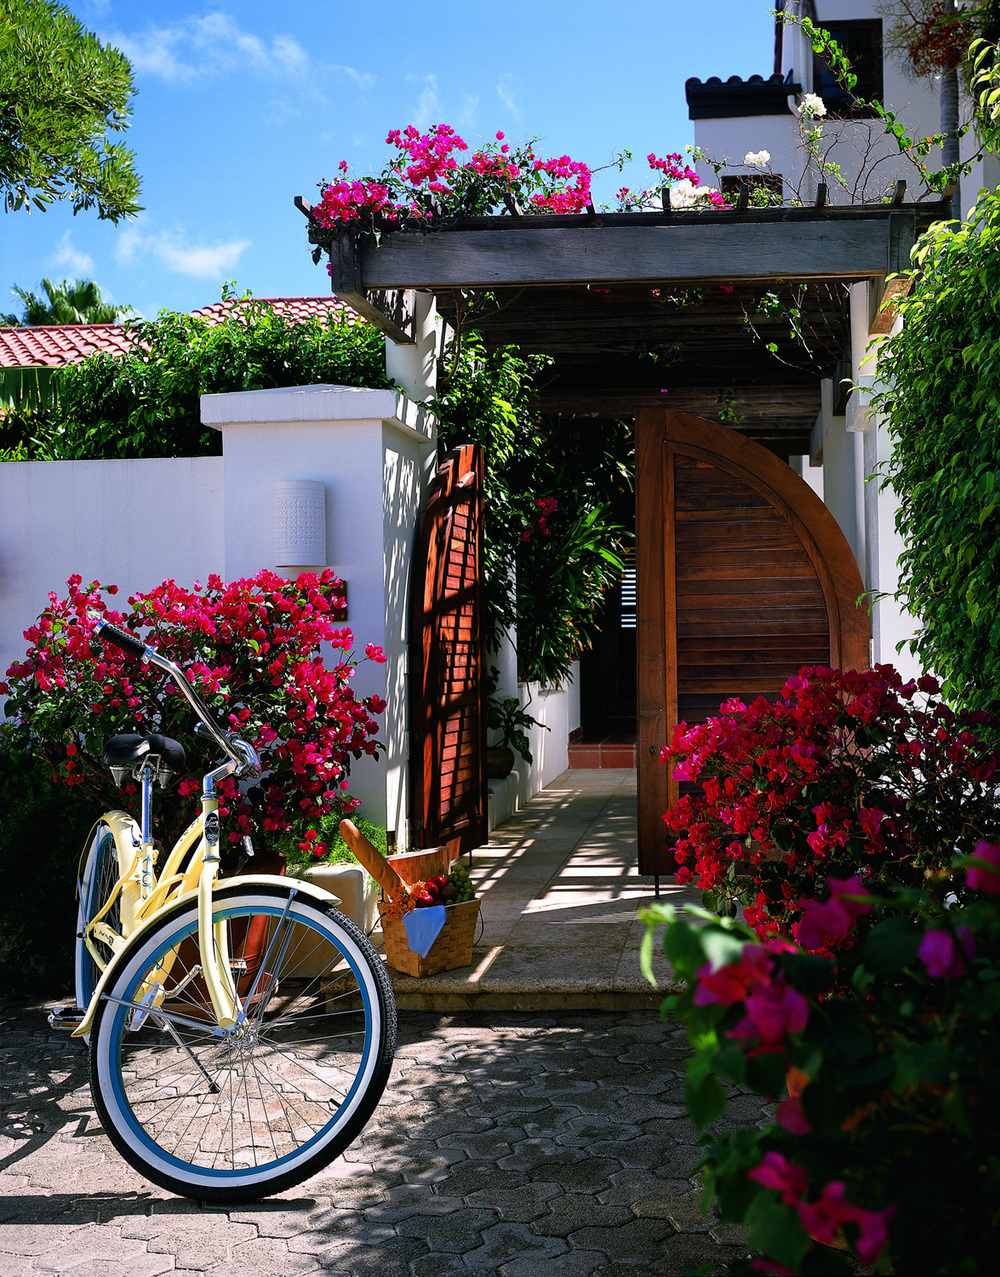 01 - Bicycle at Villa Entry.jpg